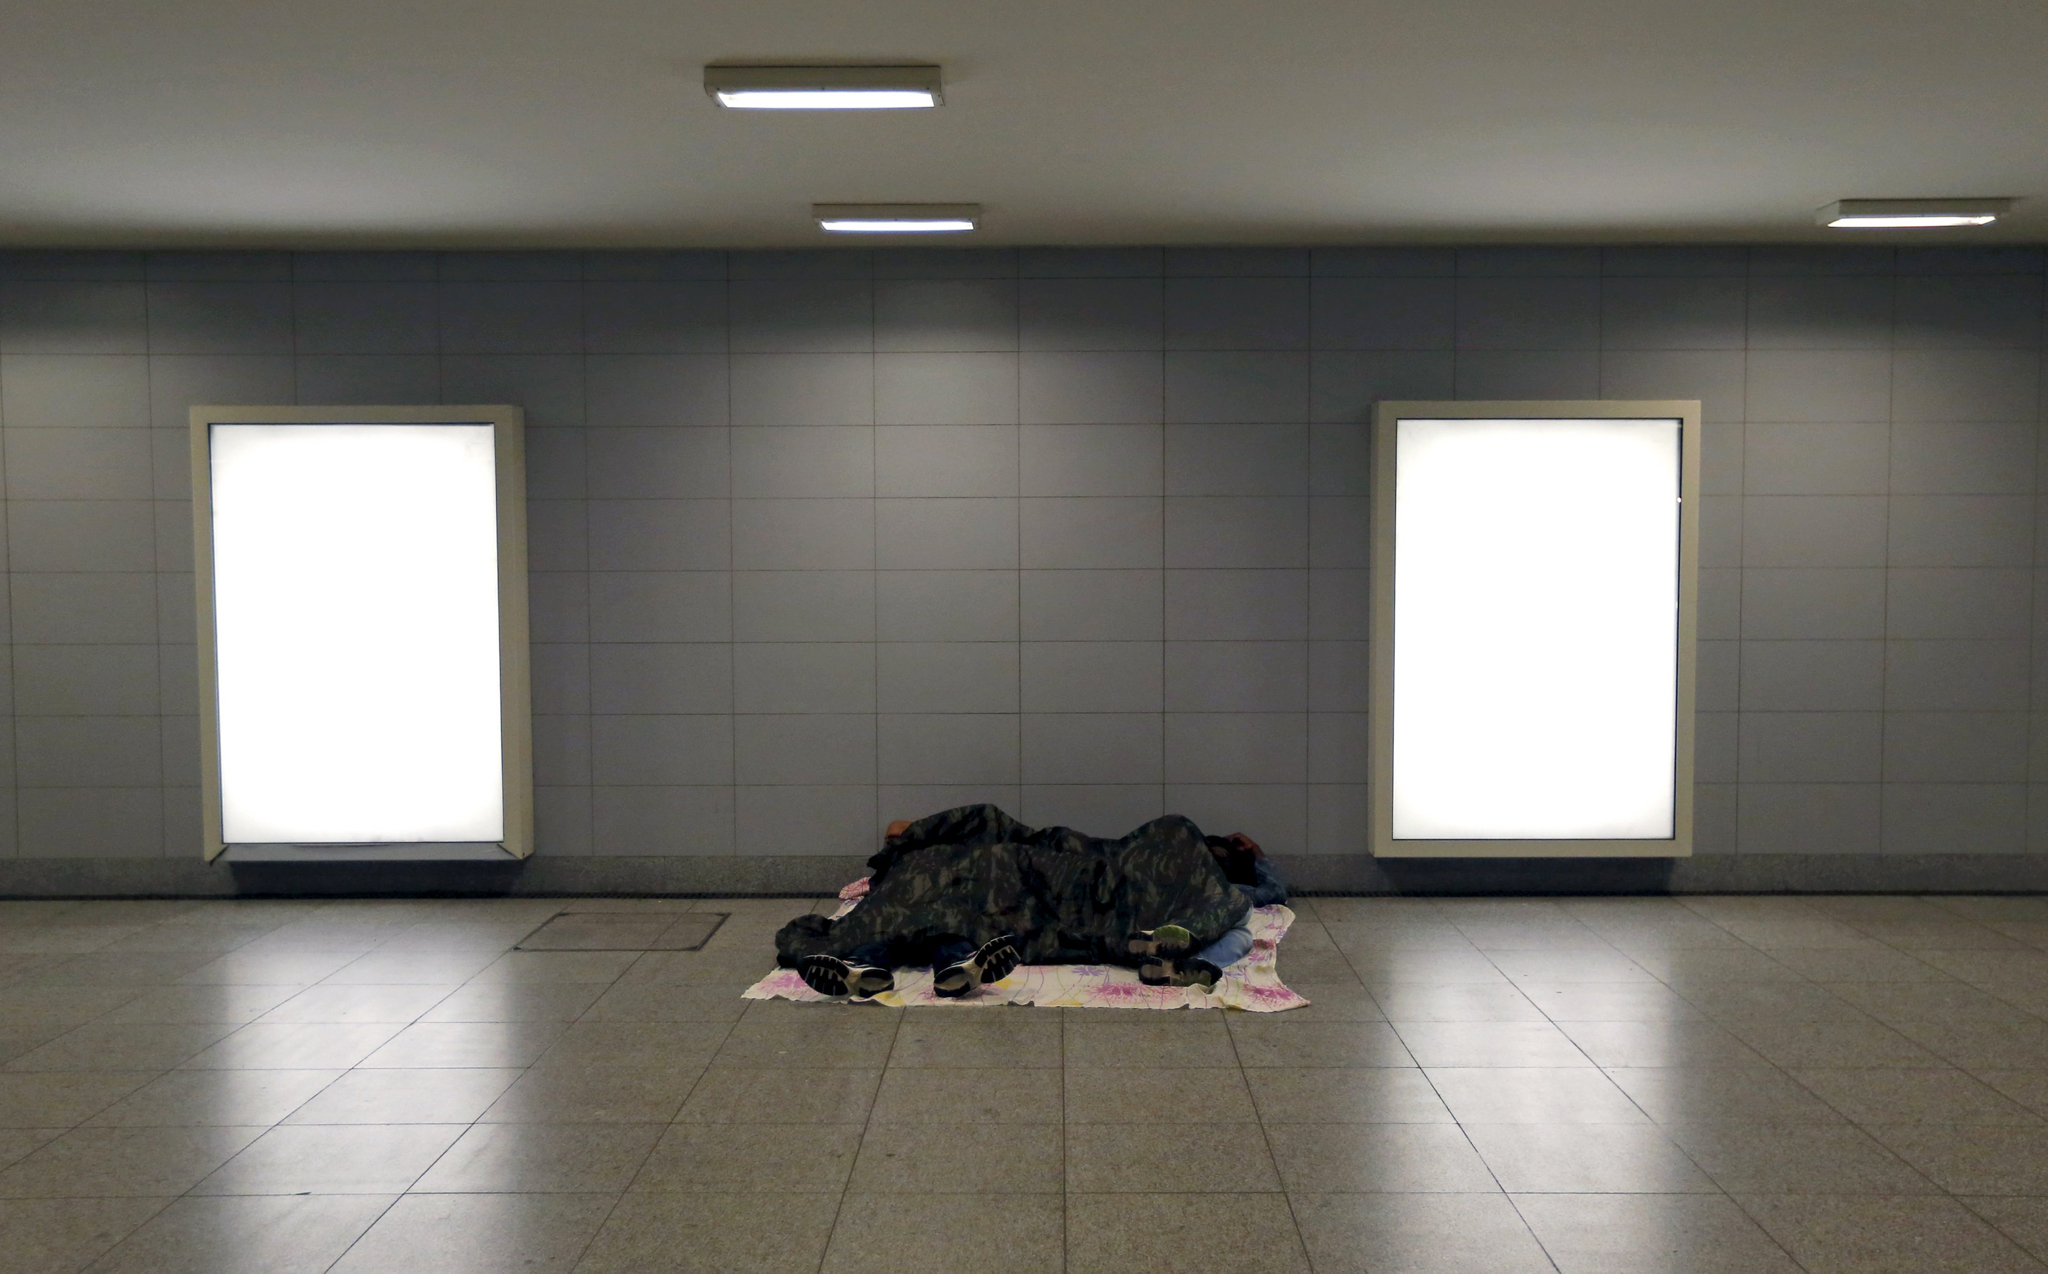 Migrants sleep outside a train station in Budapest...Migrants sleep outside a train station in Budapest, Hungary, August 3, 2015. While Hungary is an avenue rather than a destination for the migrants, the central European country is increasingly weary and polarised as the influx grows. Conflicts have begun to appear, and the government is taking an ever harder line. Picture taken August 3, 2015. REUTERS/Laszlo Balogh